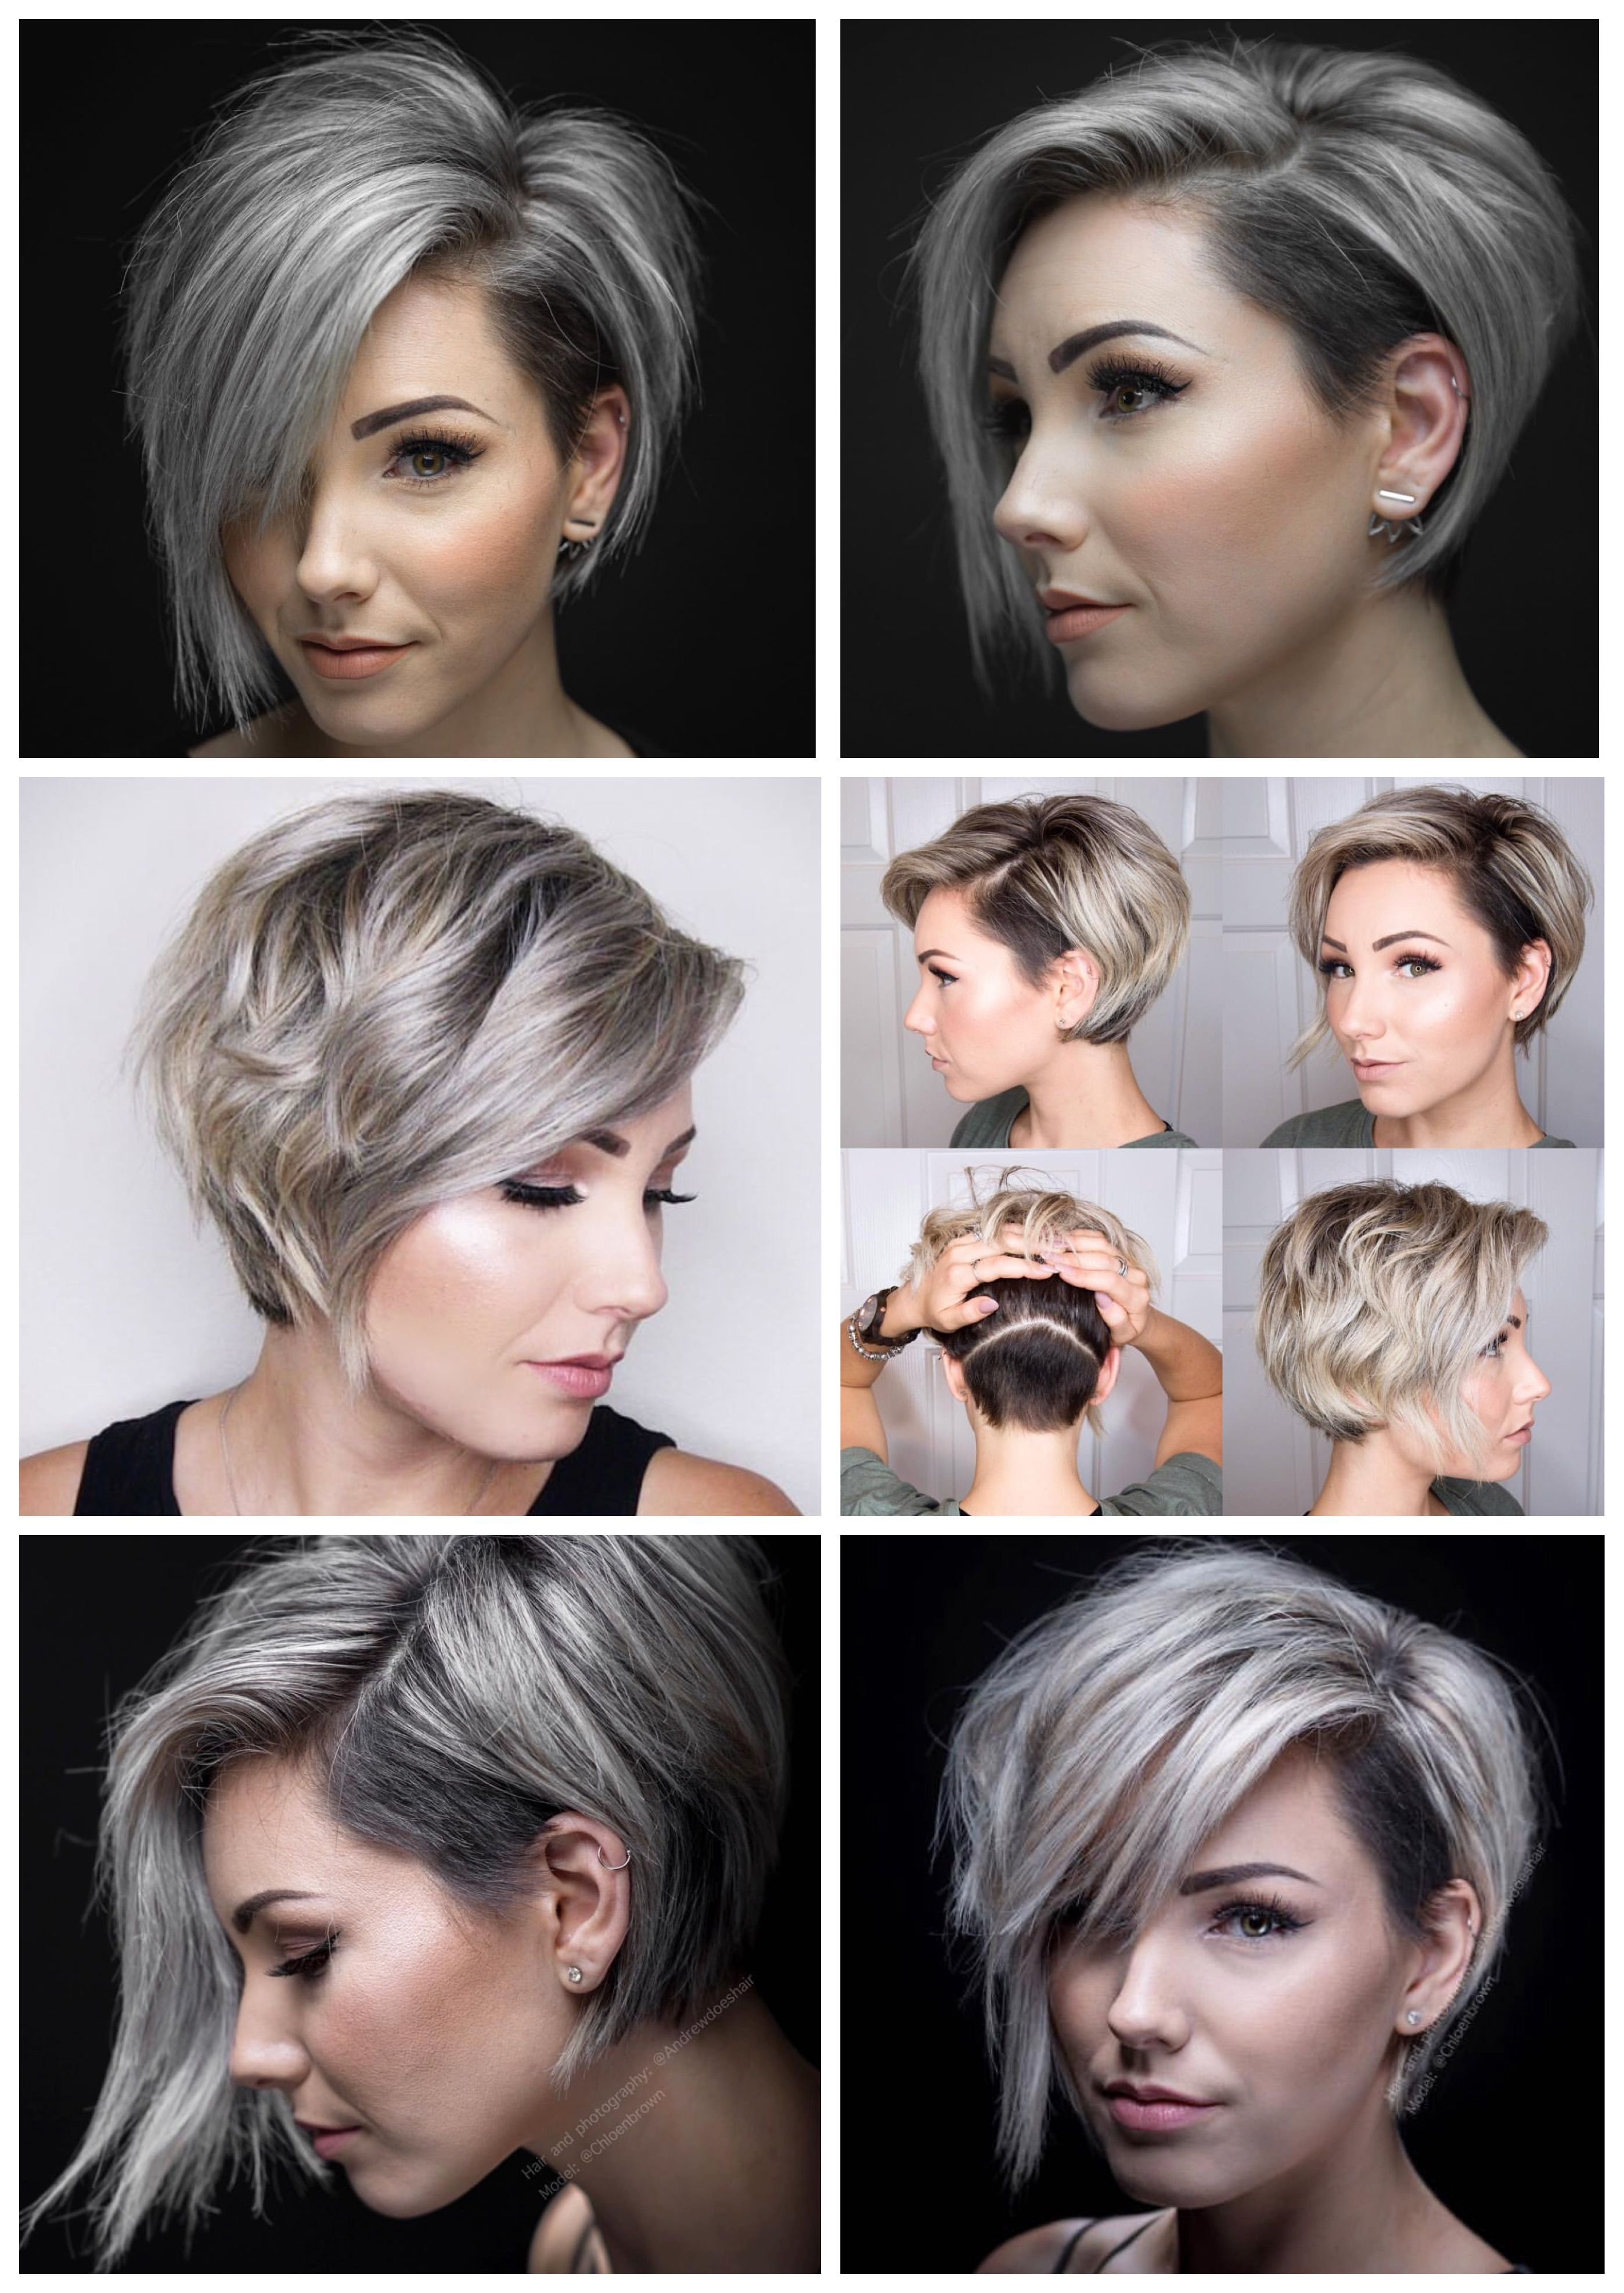 Asymmetrical Short Bob : asymmetrical, short